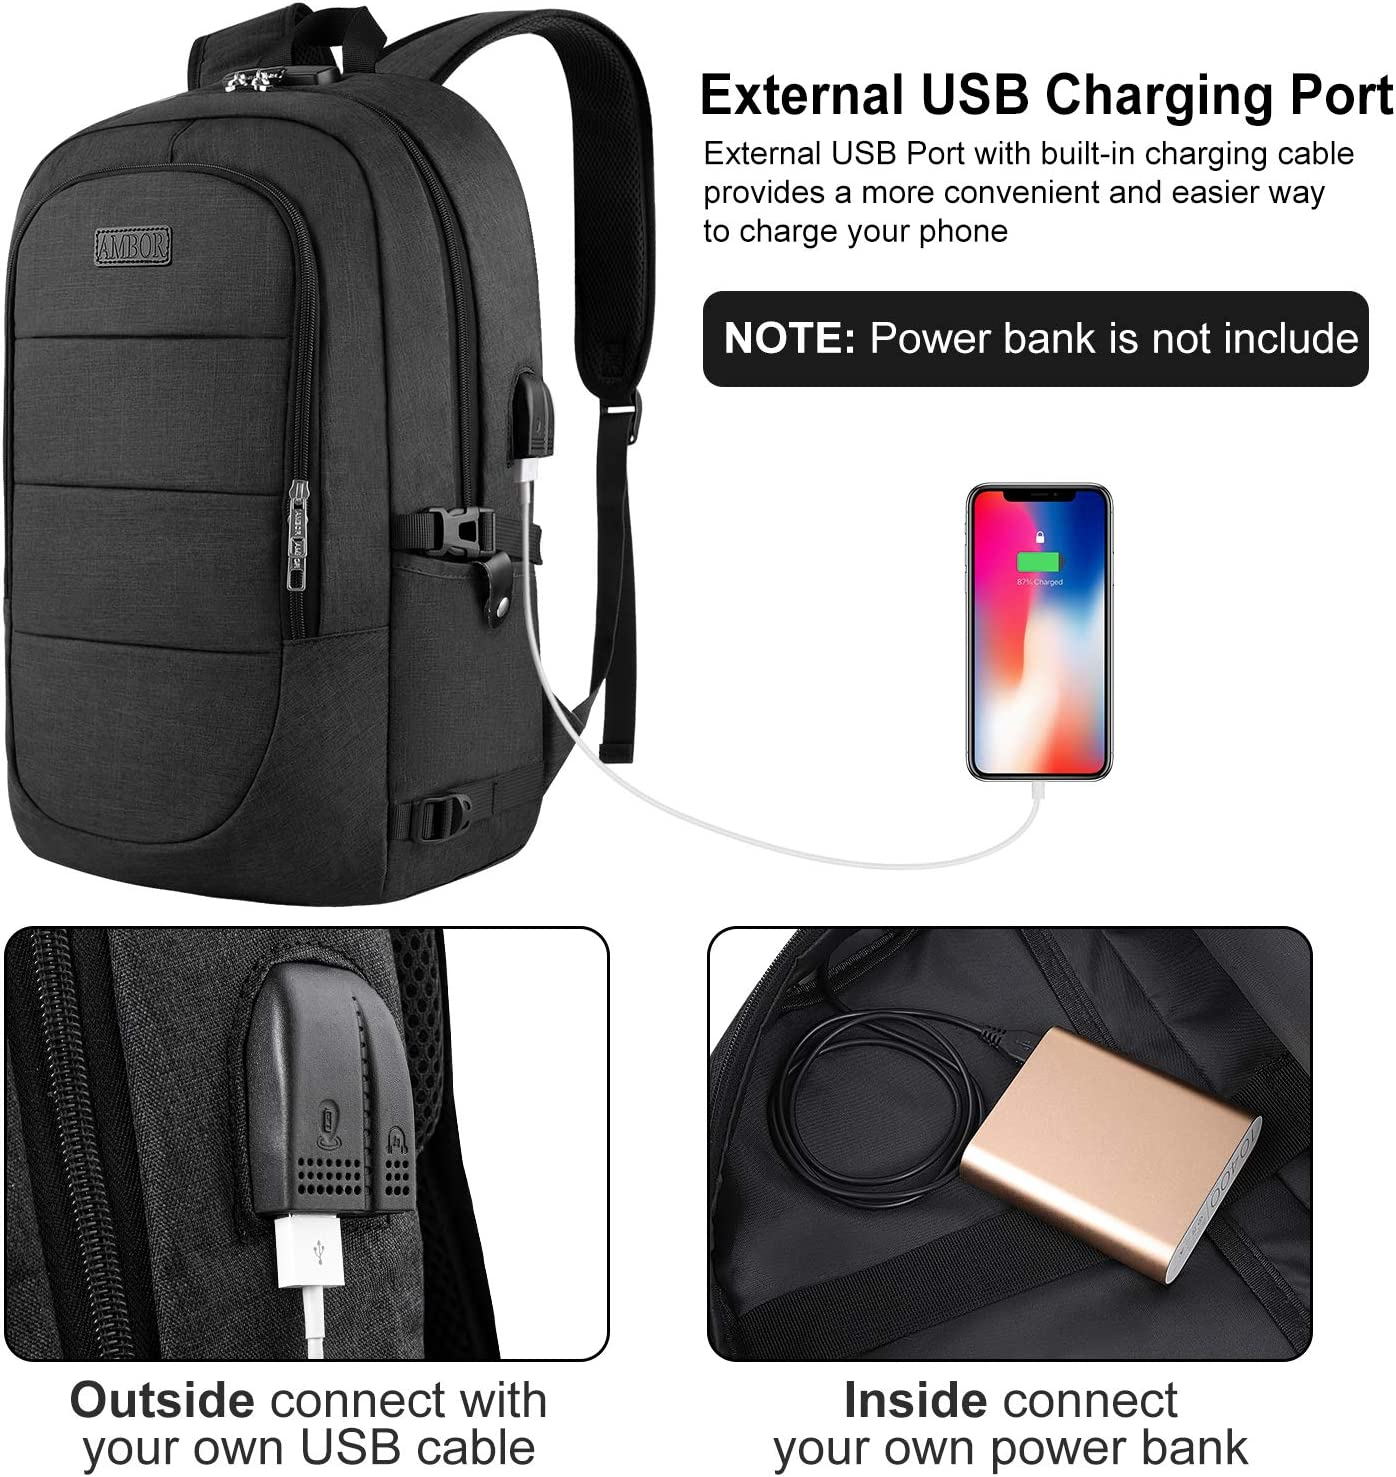 Oxford Backpack Male Outdoor Computer Backpack USB Charging Anti-Theft Travel Backpack Size: 301245CM BAG Laptop Backpack